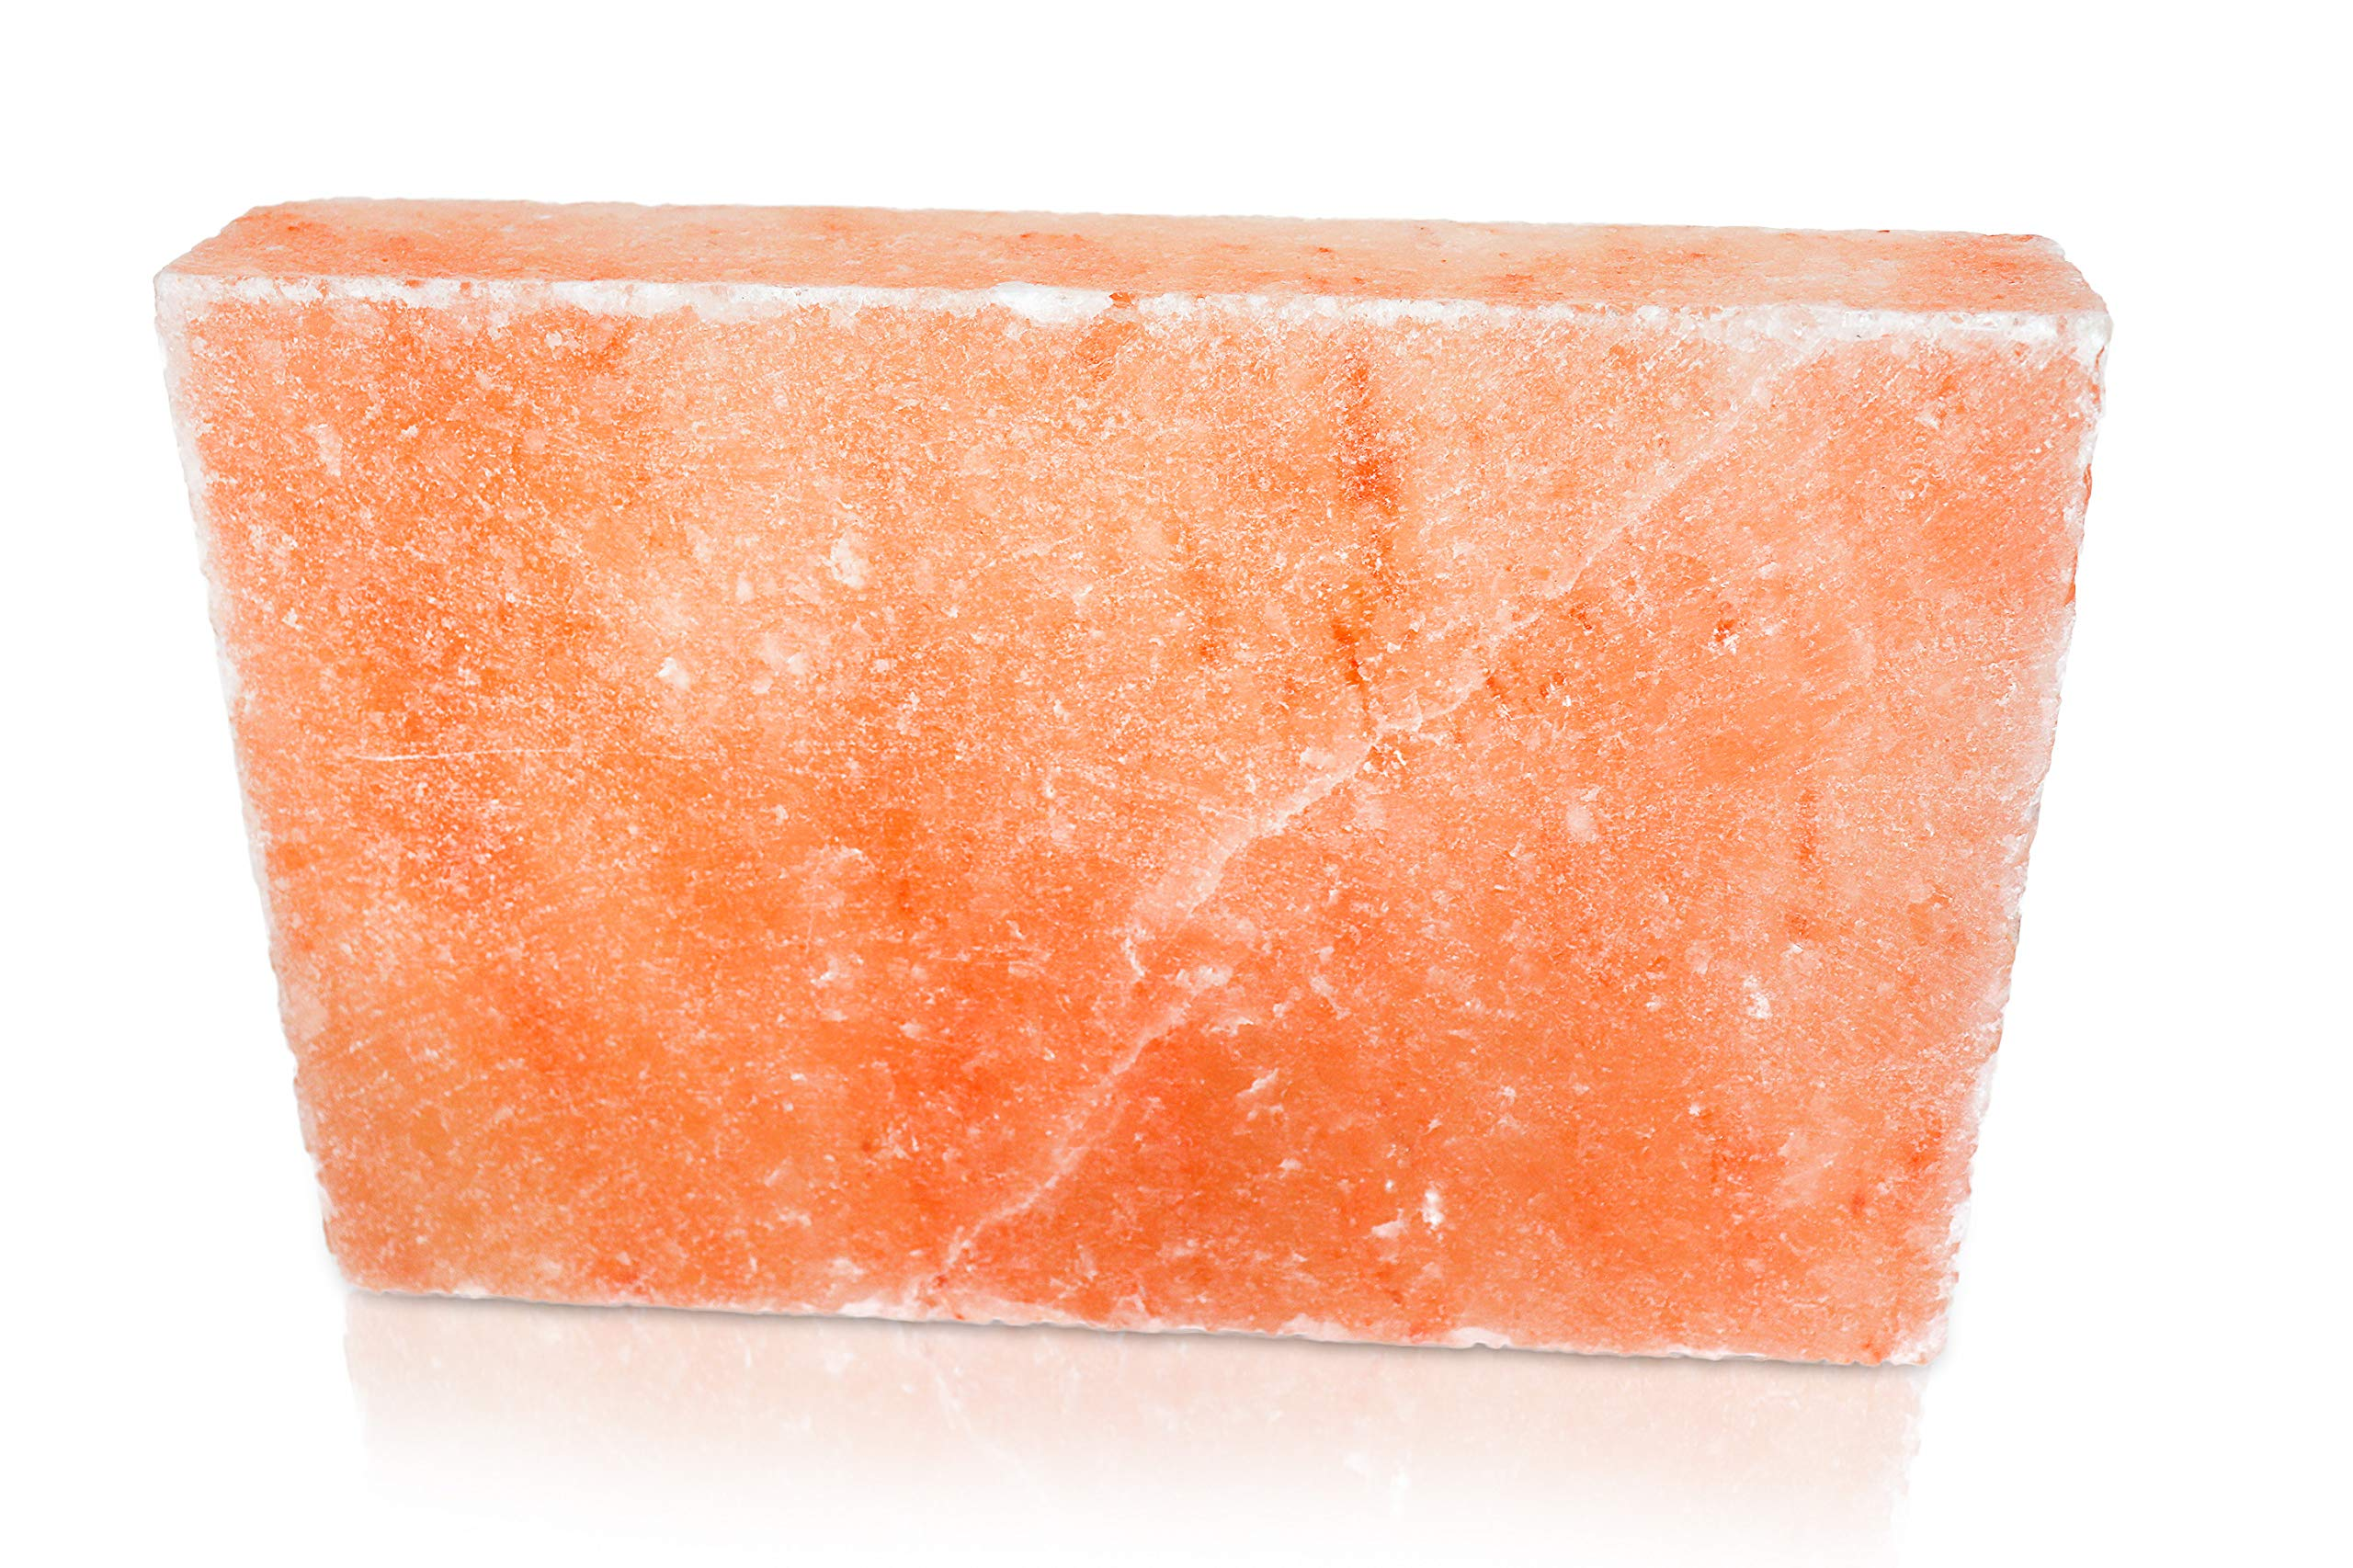 Himalayan Secrets Himalayan Salt Block Cooking Tile for Grilling or Serving - for Building Salt Walls As Well (12'' x 8'' x 2'') by Himalayan Secrets (Image #2)